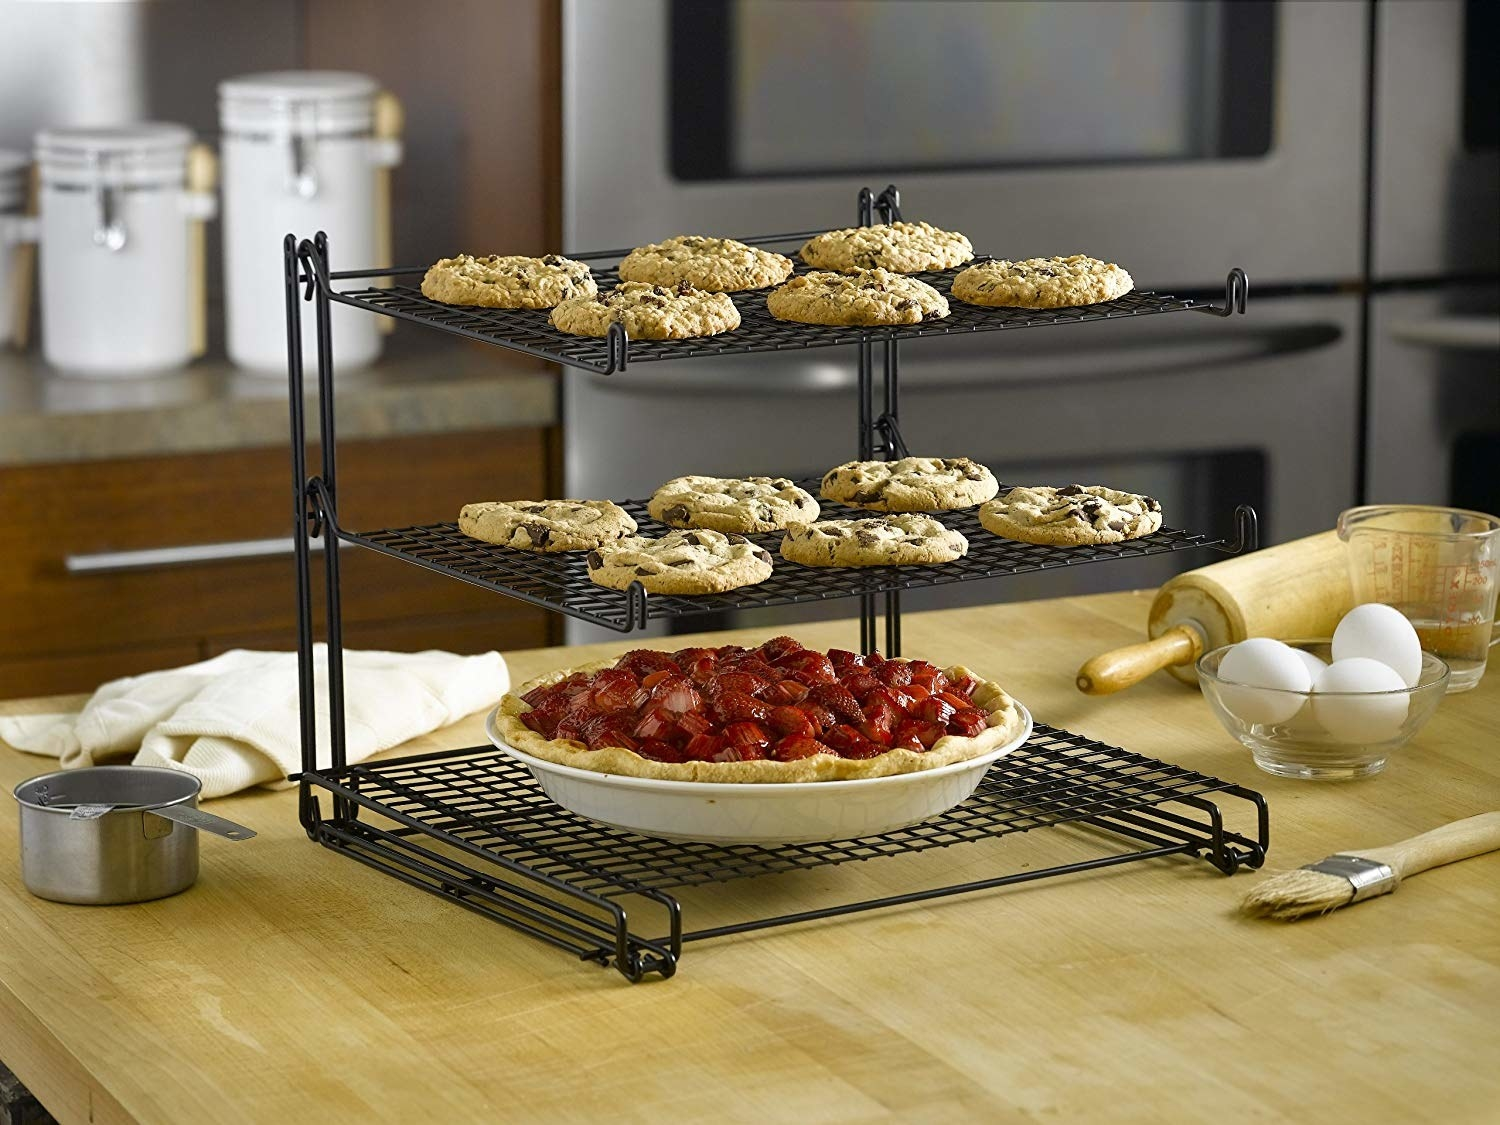 A black three tier cooling rack with baked goods cooling off on them